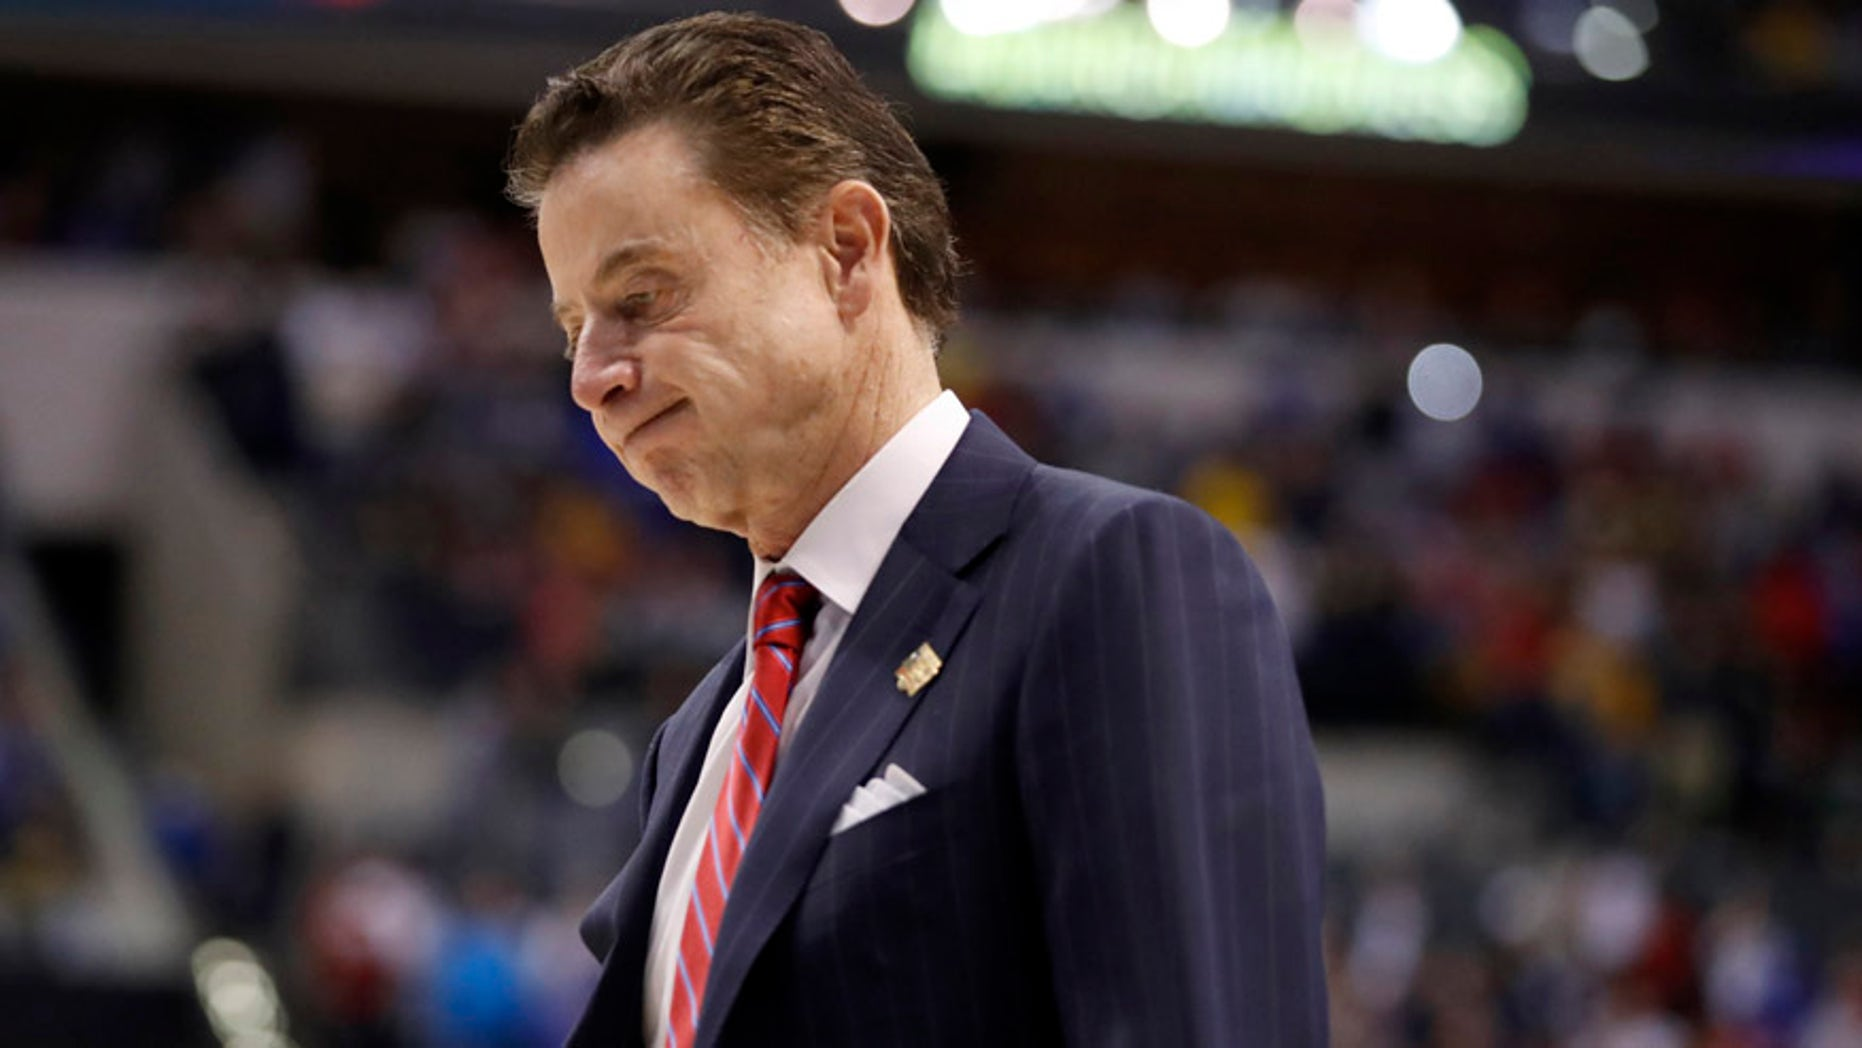 Louisville head coach Rick Pitino walks off the court in the men's NCAA college basketball tournament in Indianapolis on March 19, 2017.